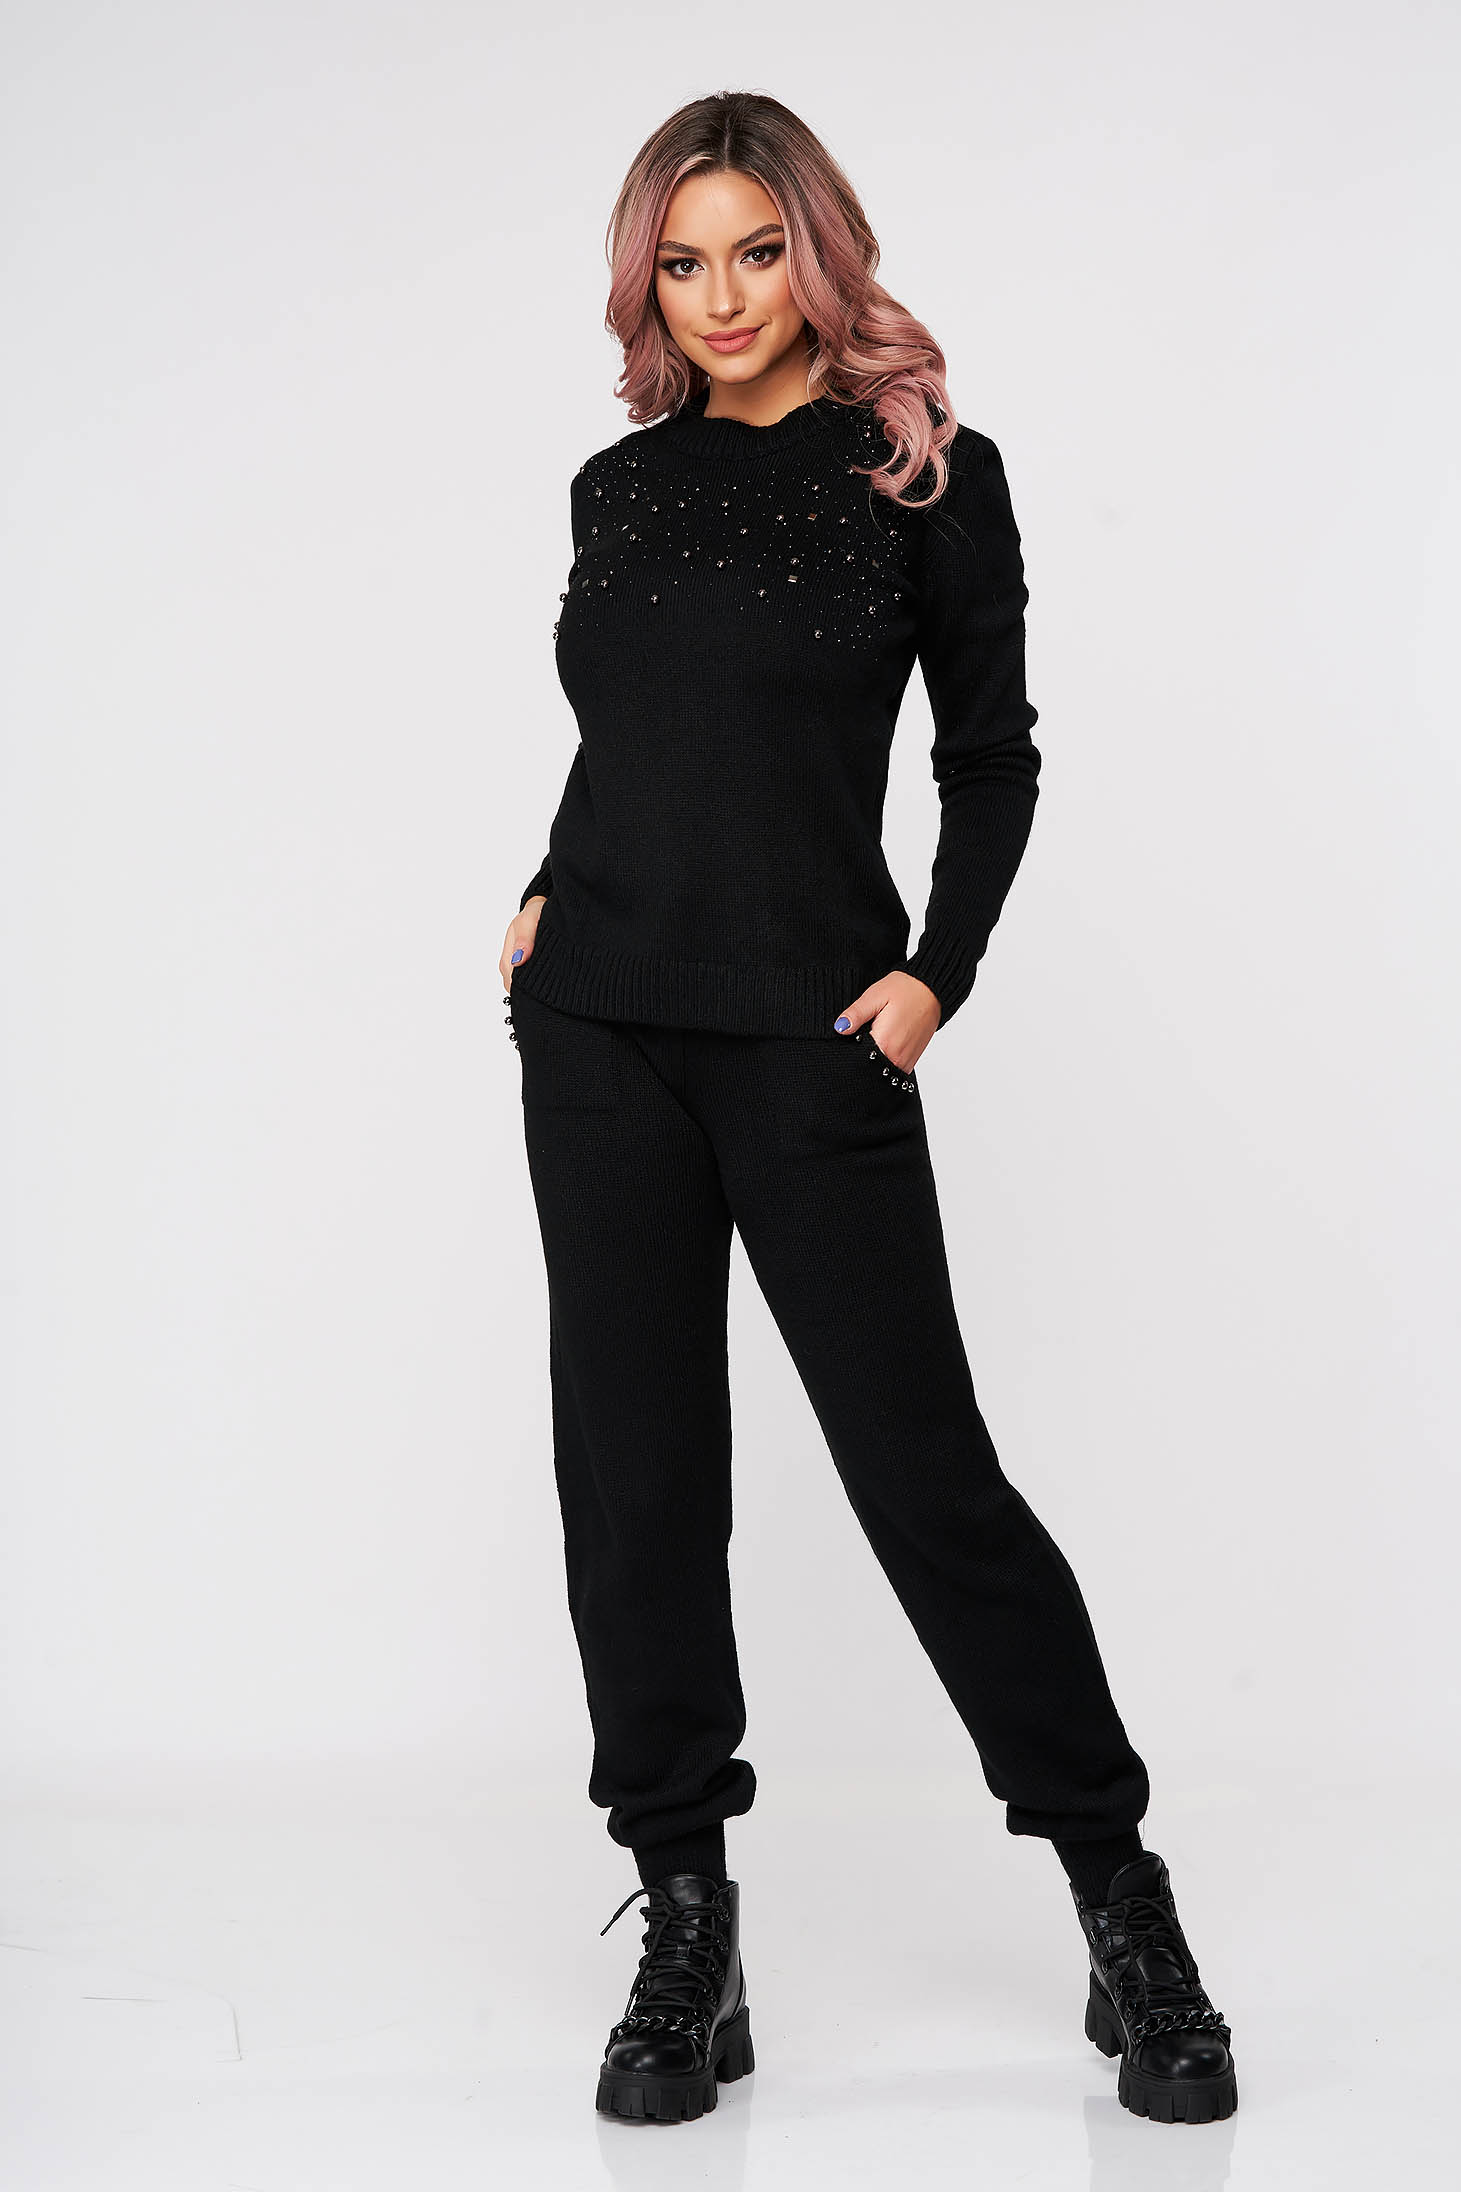 Black sport 2 pieces knitted 2 pieces with pearls medium waist